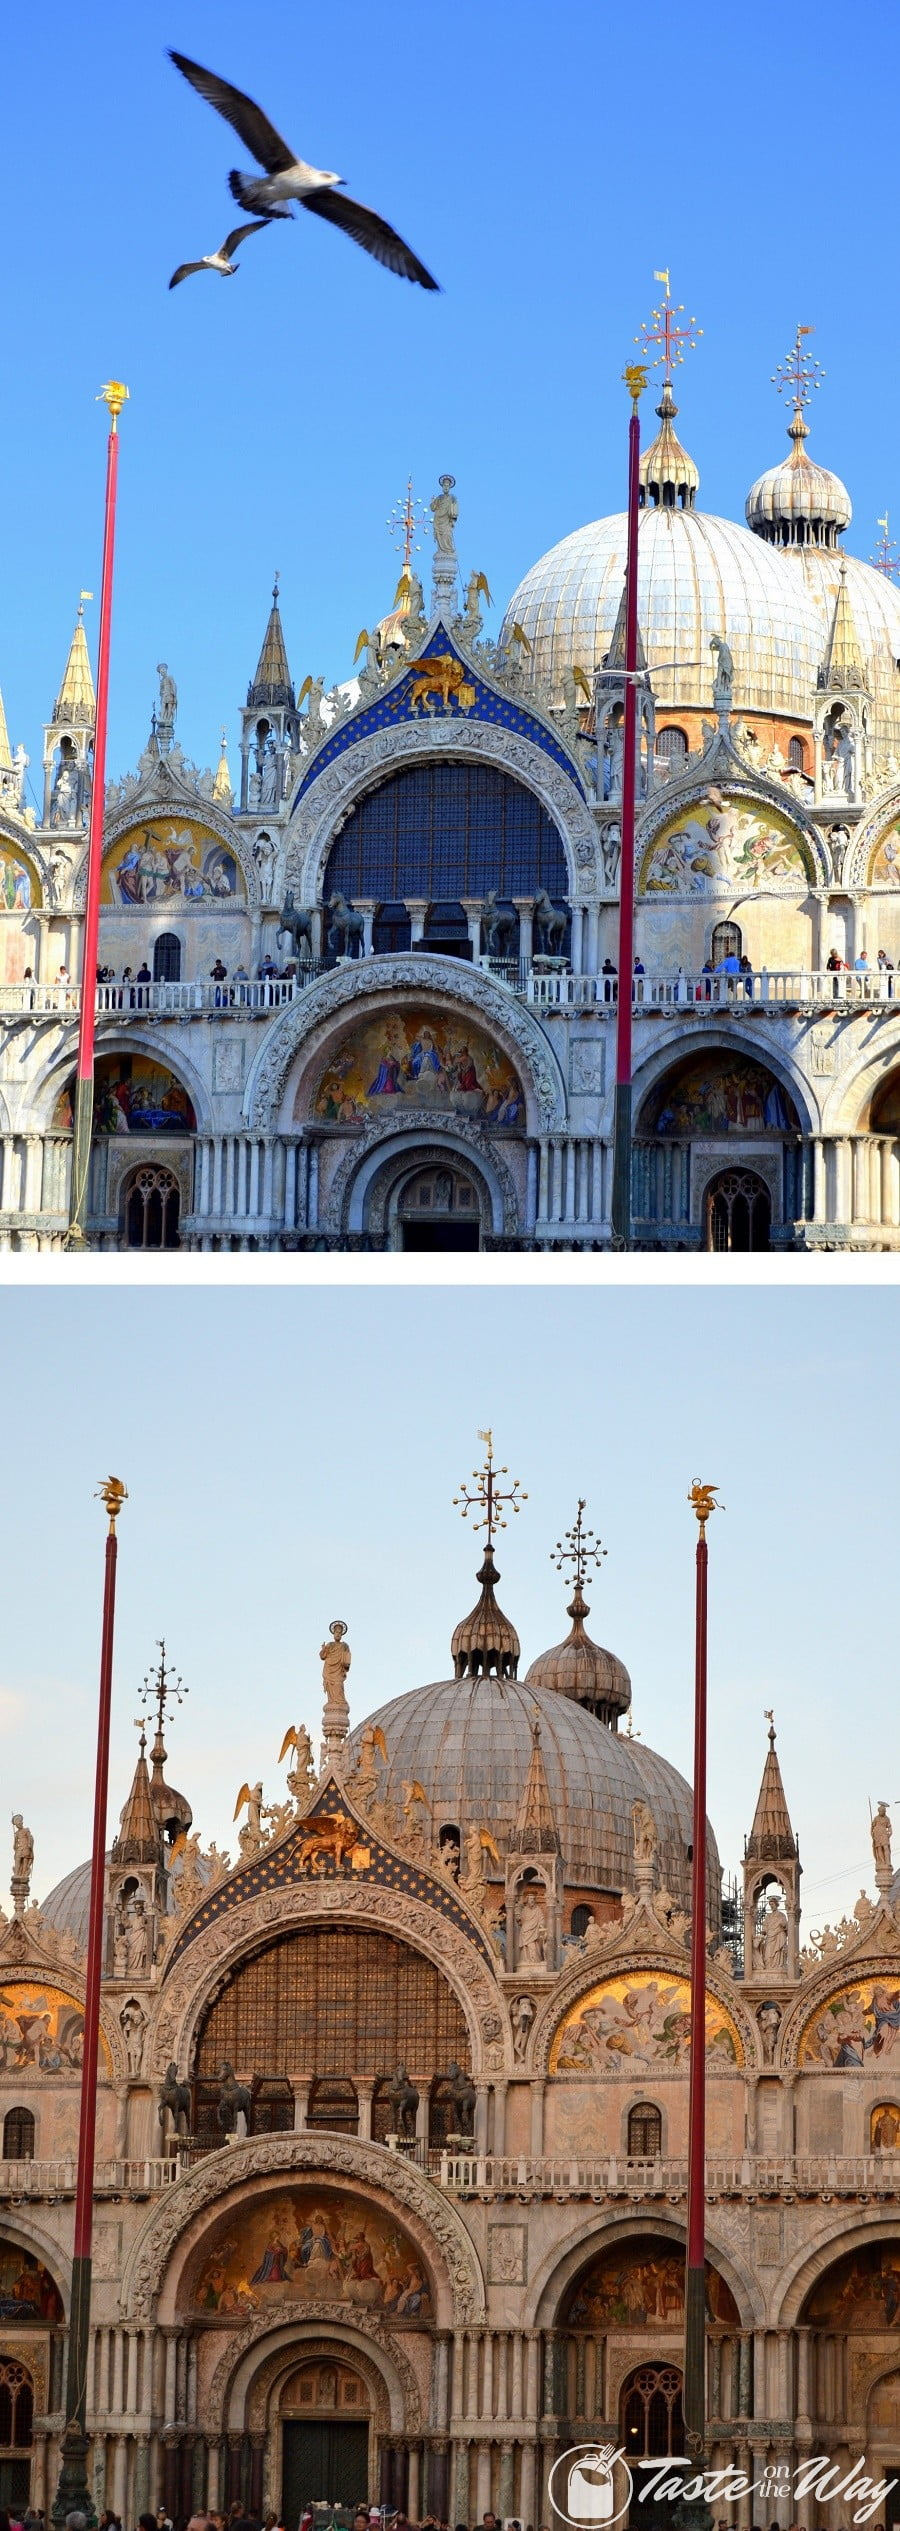 Check out these awesome pictures of San Marco Basilica in #Venice #travel #photography @tasteontheway